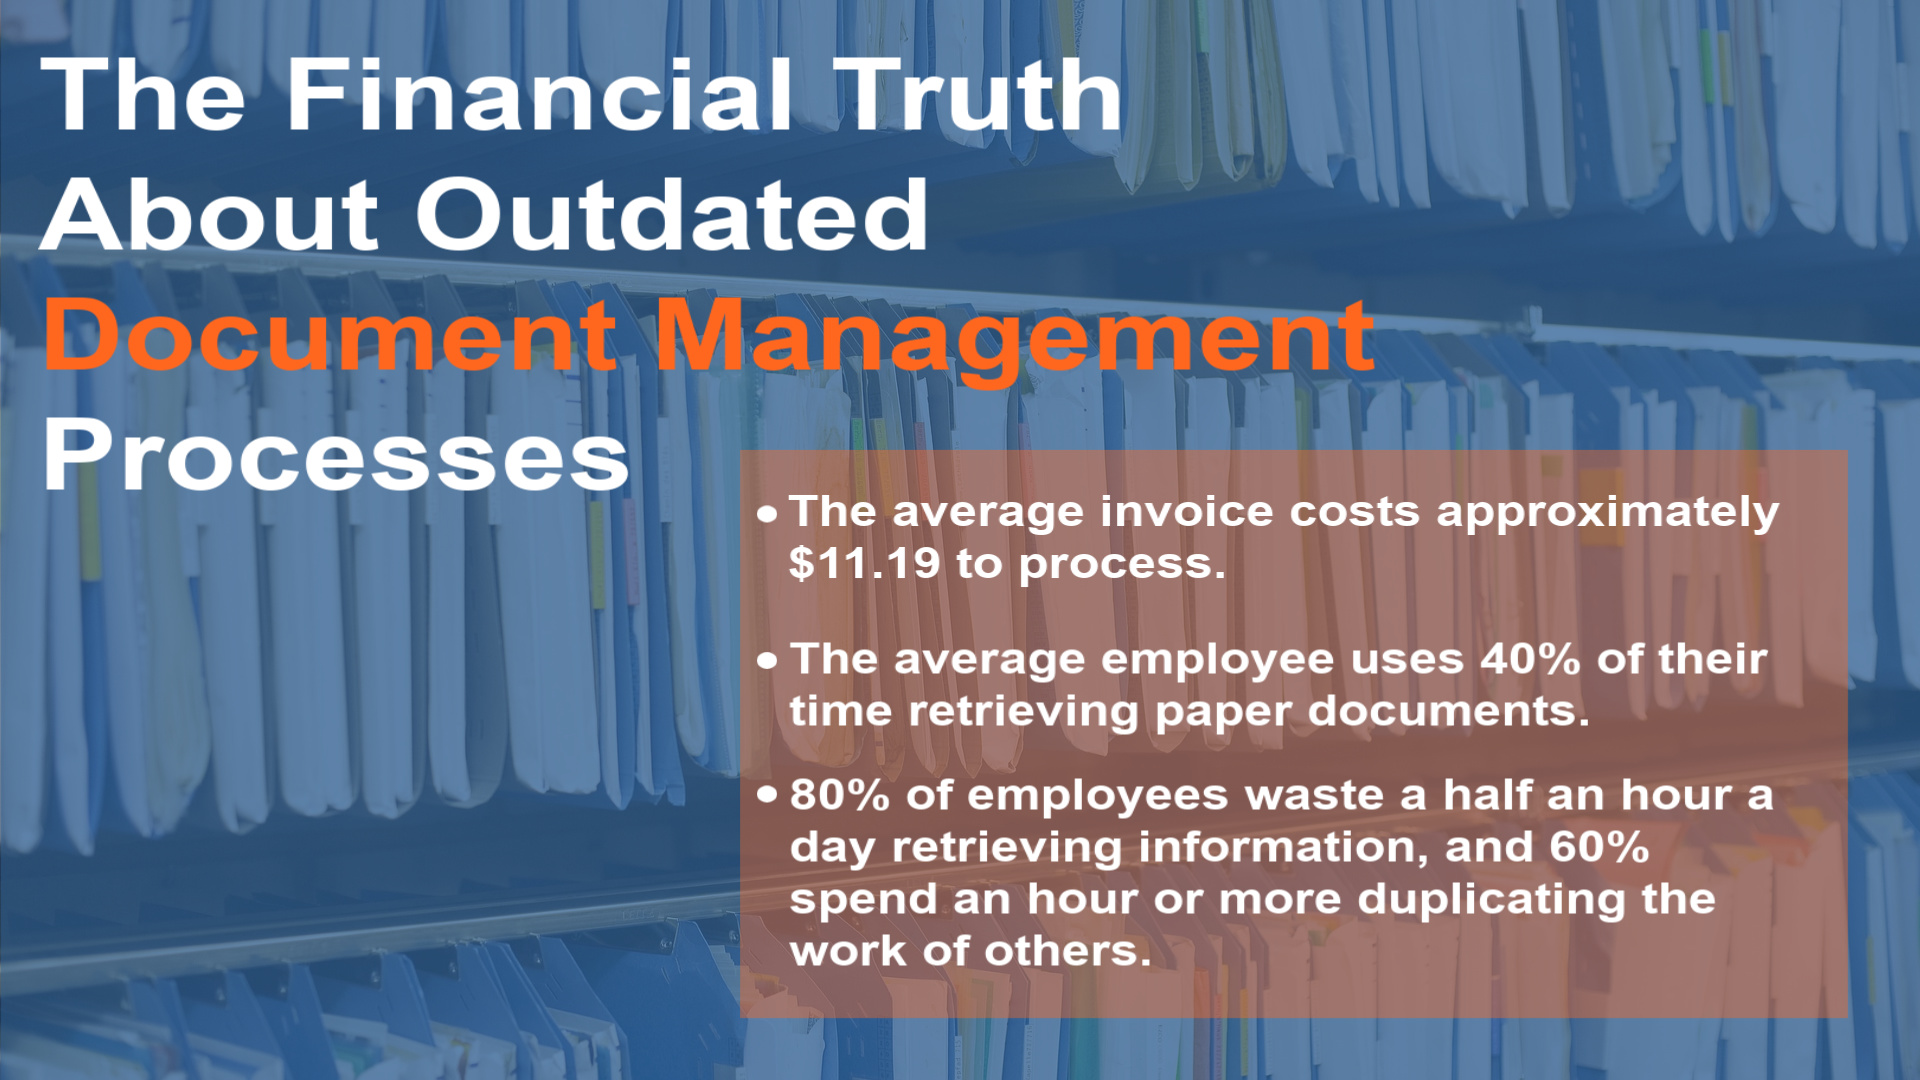 Outdated Document Management Processes